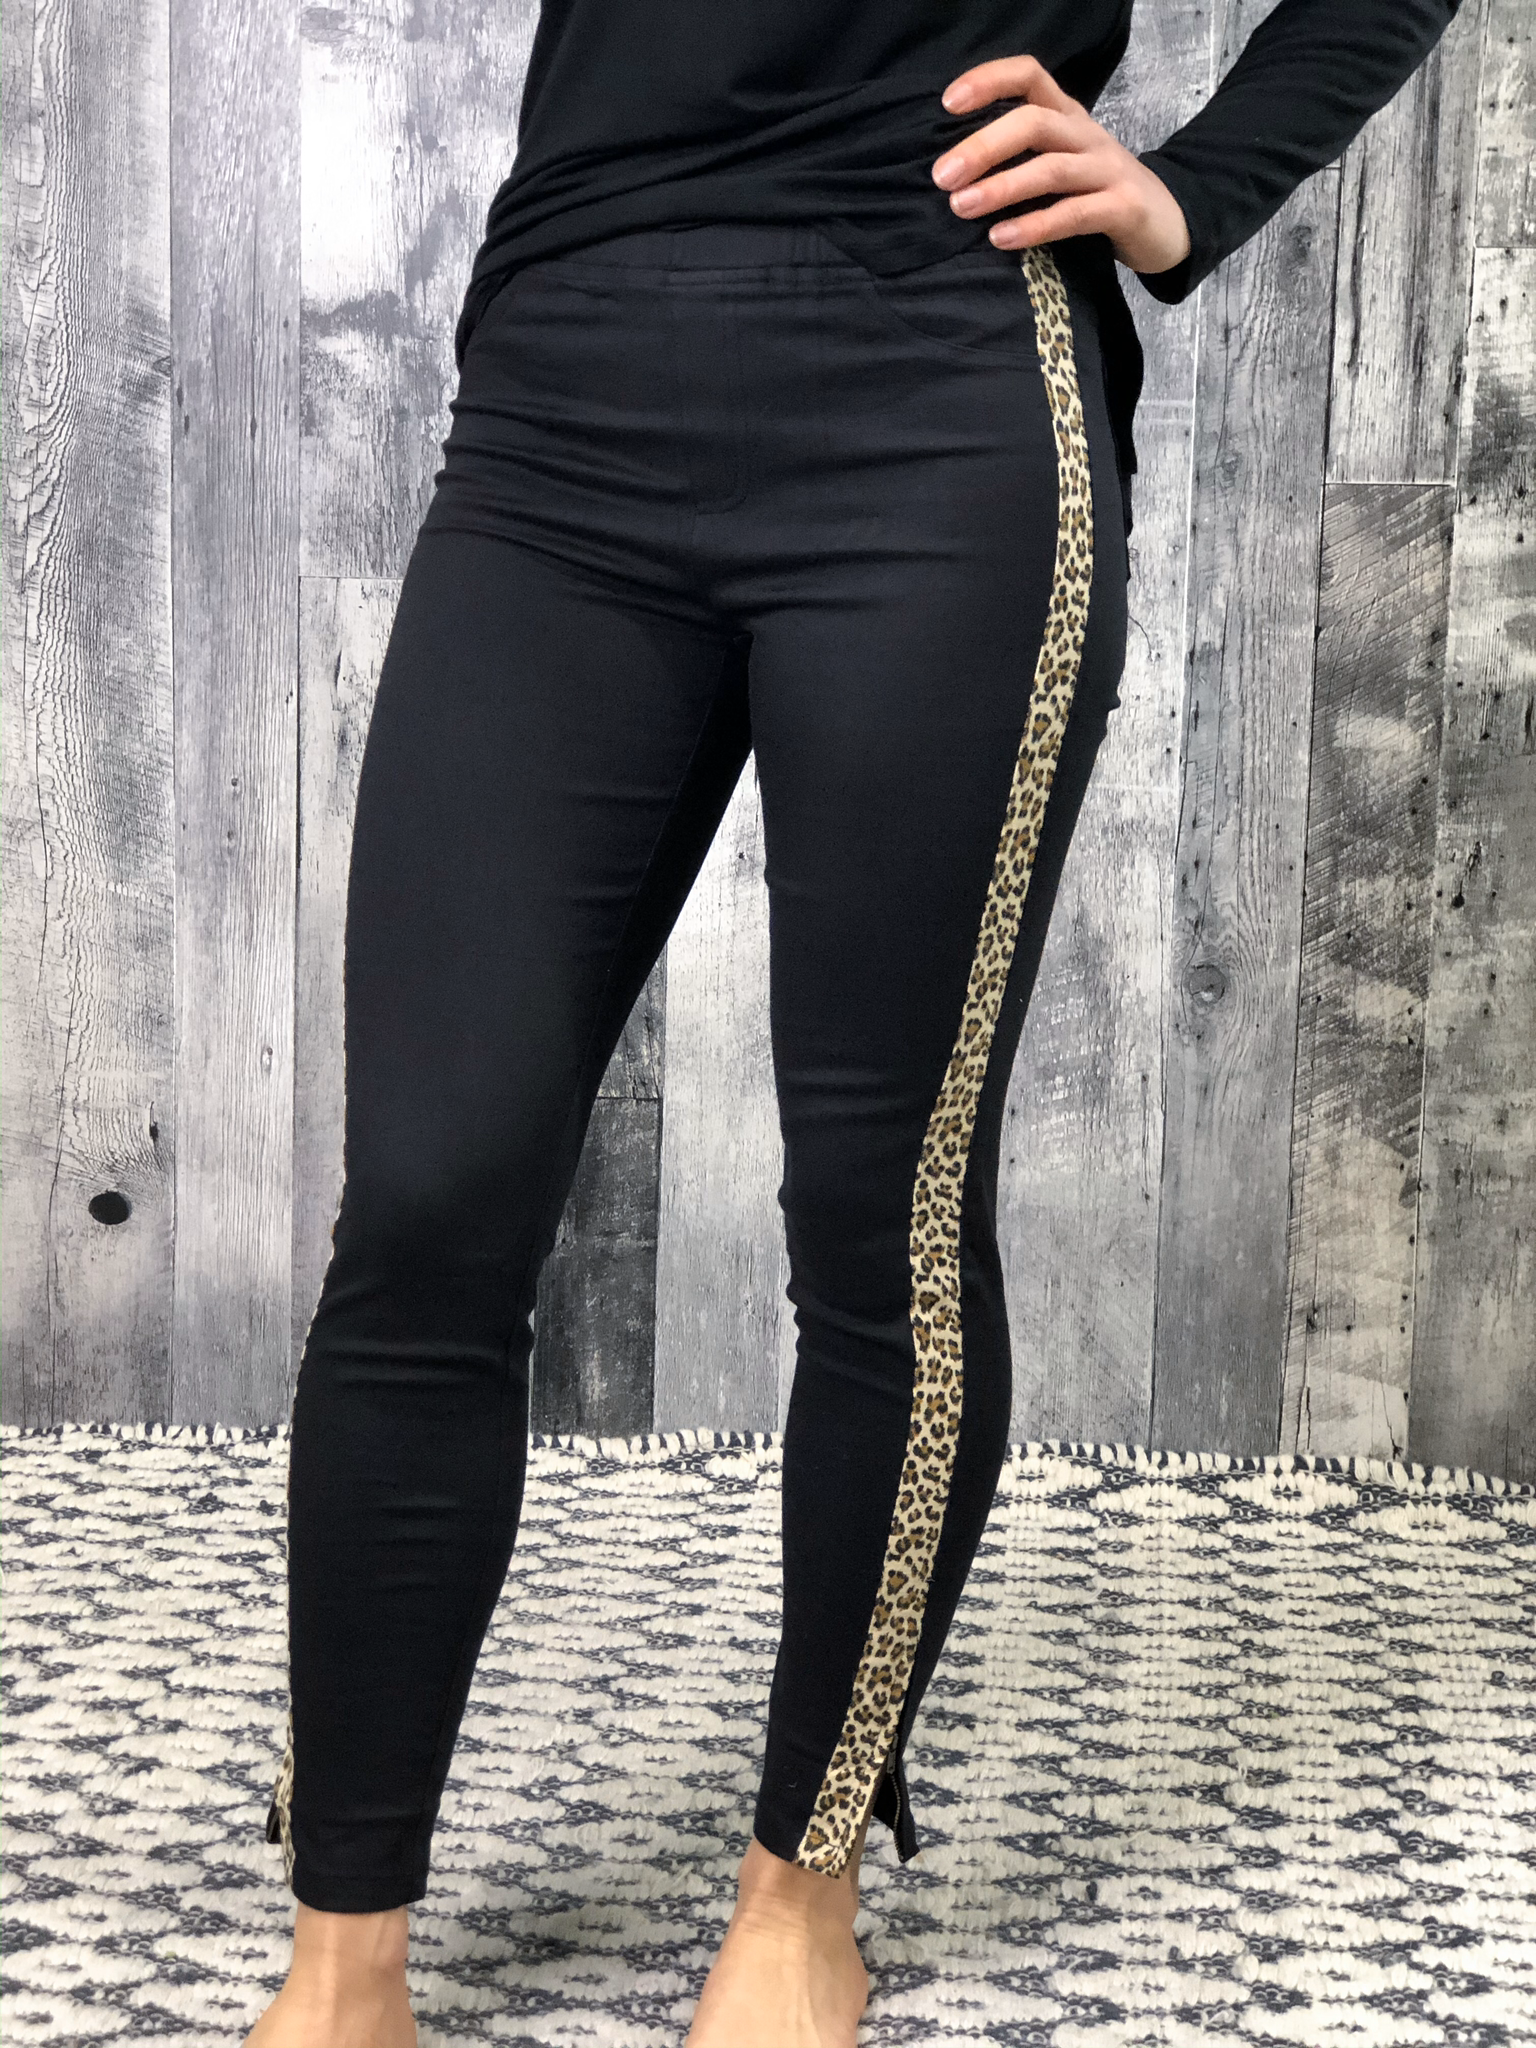 Black Cheetah Stripe Pants with zipper detail